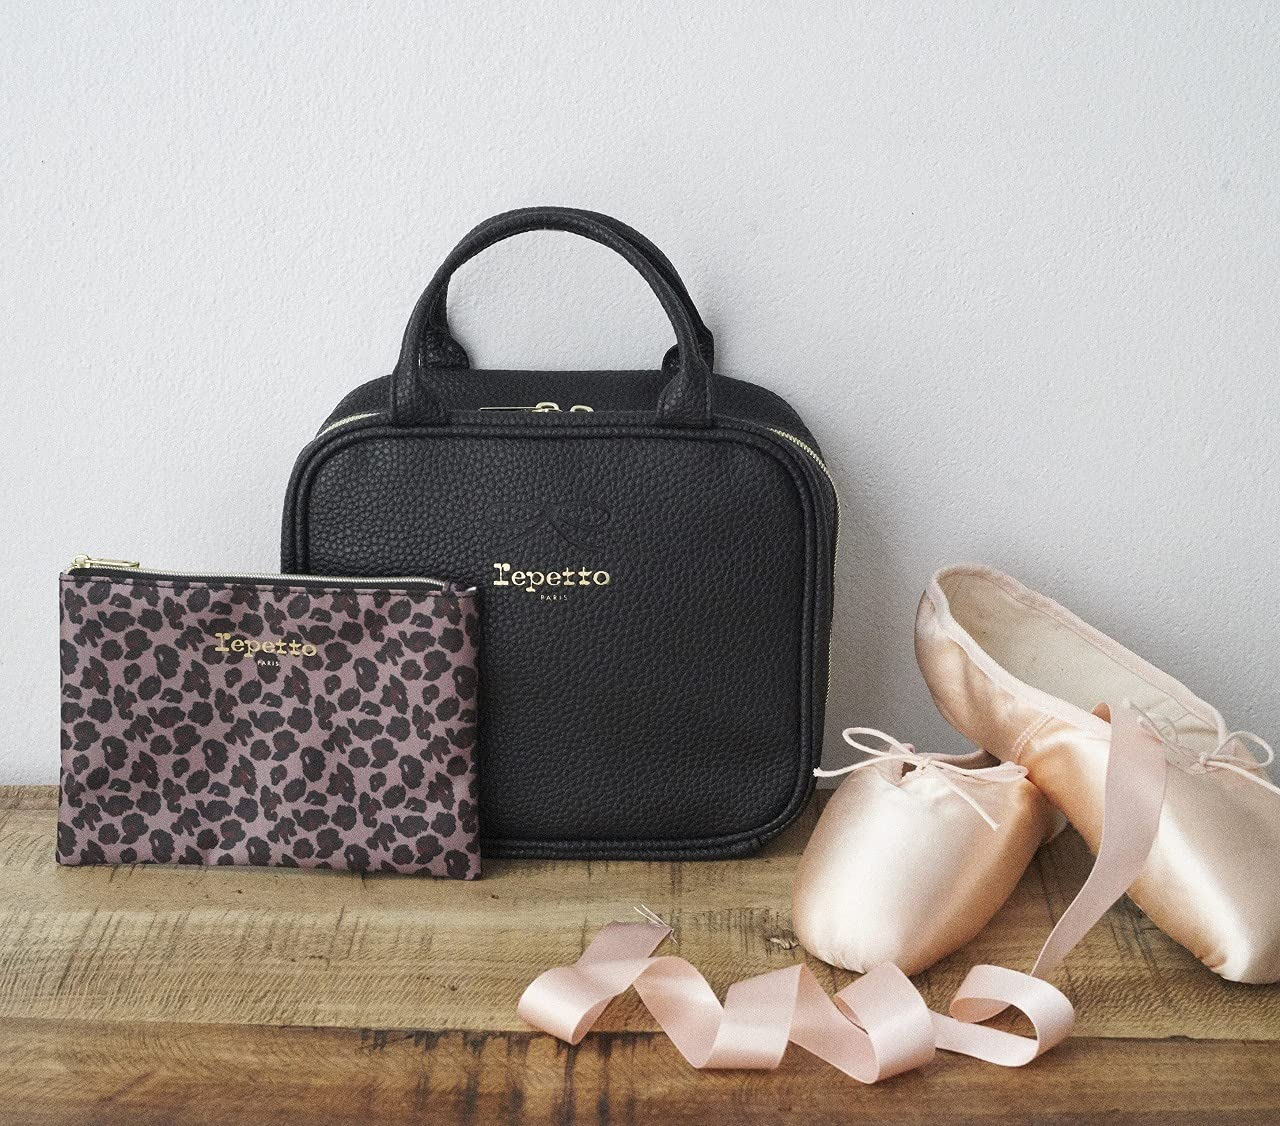 Repetto Special Book Multi Pouch Black:9/7発売【ムック本付録】レペット マルチポーチ2点セット(ブラック)